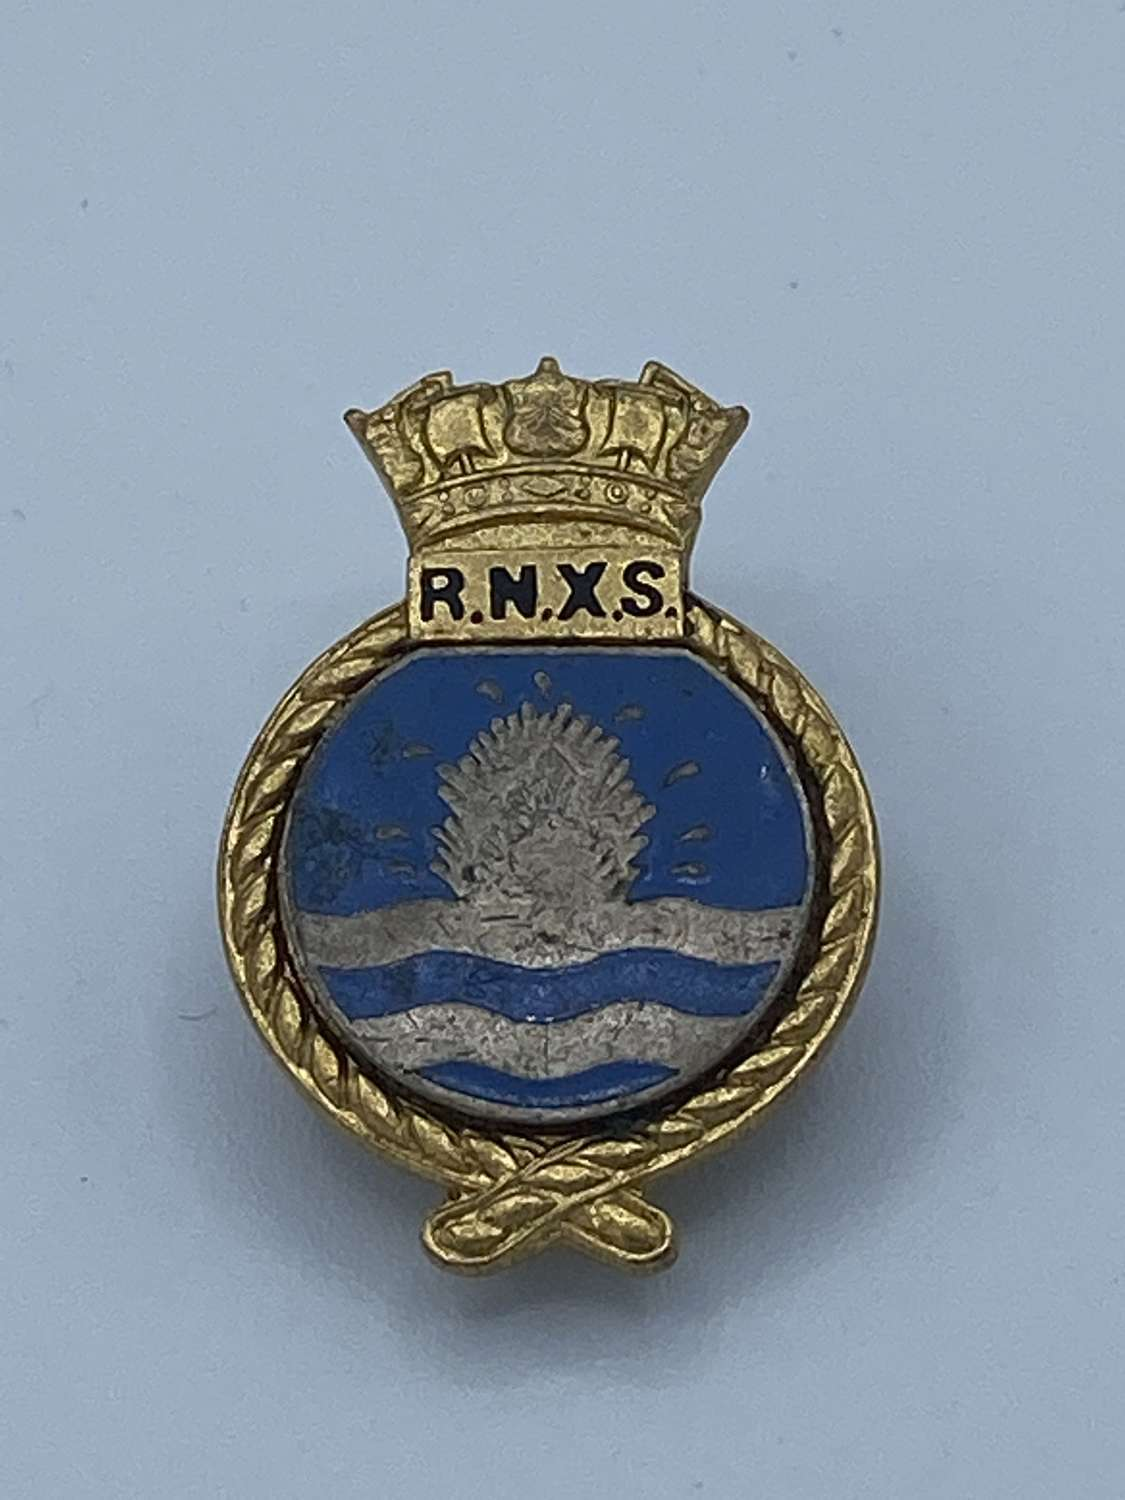 WW2 RNXS Royal Naval Auxiliary Service badge Mine Sweeper J R Gaunt